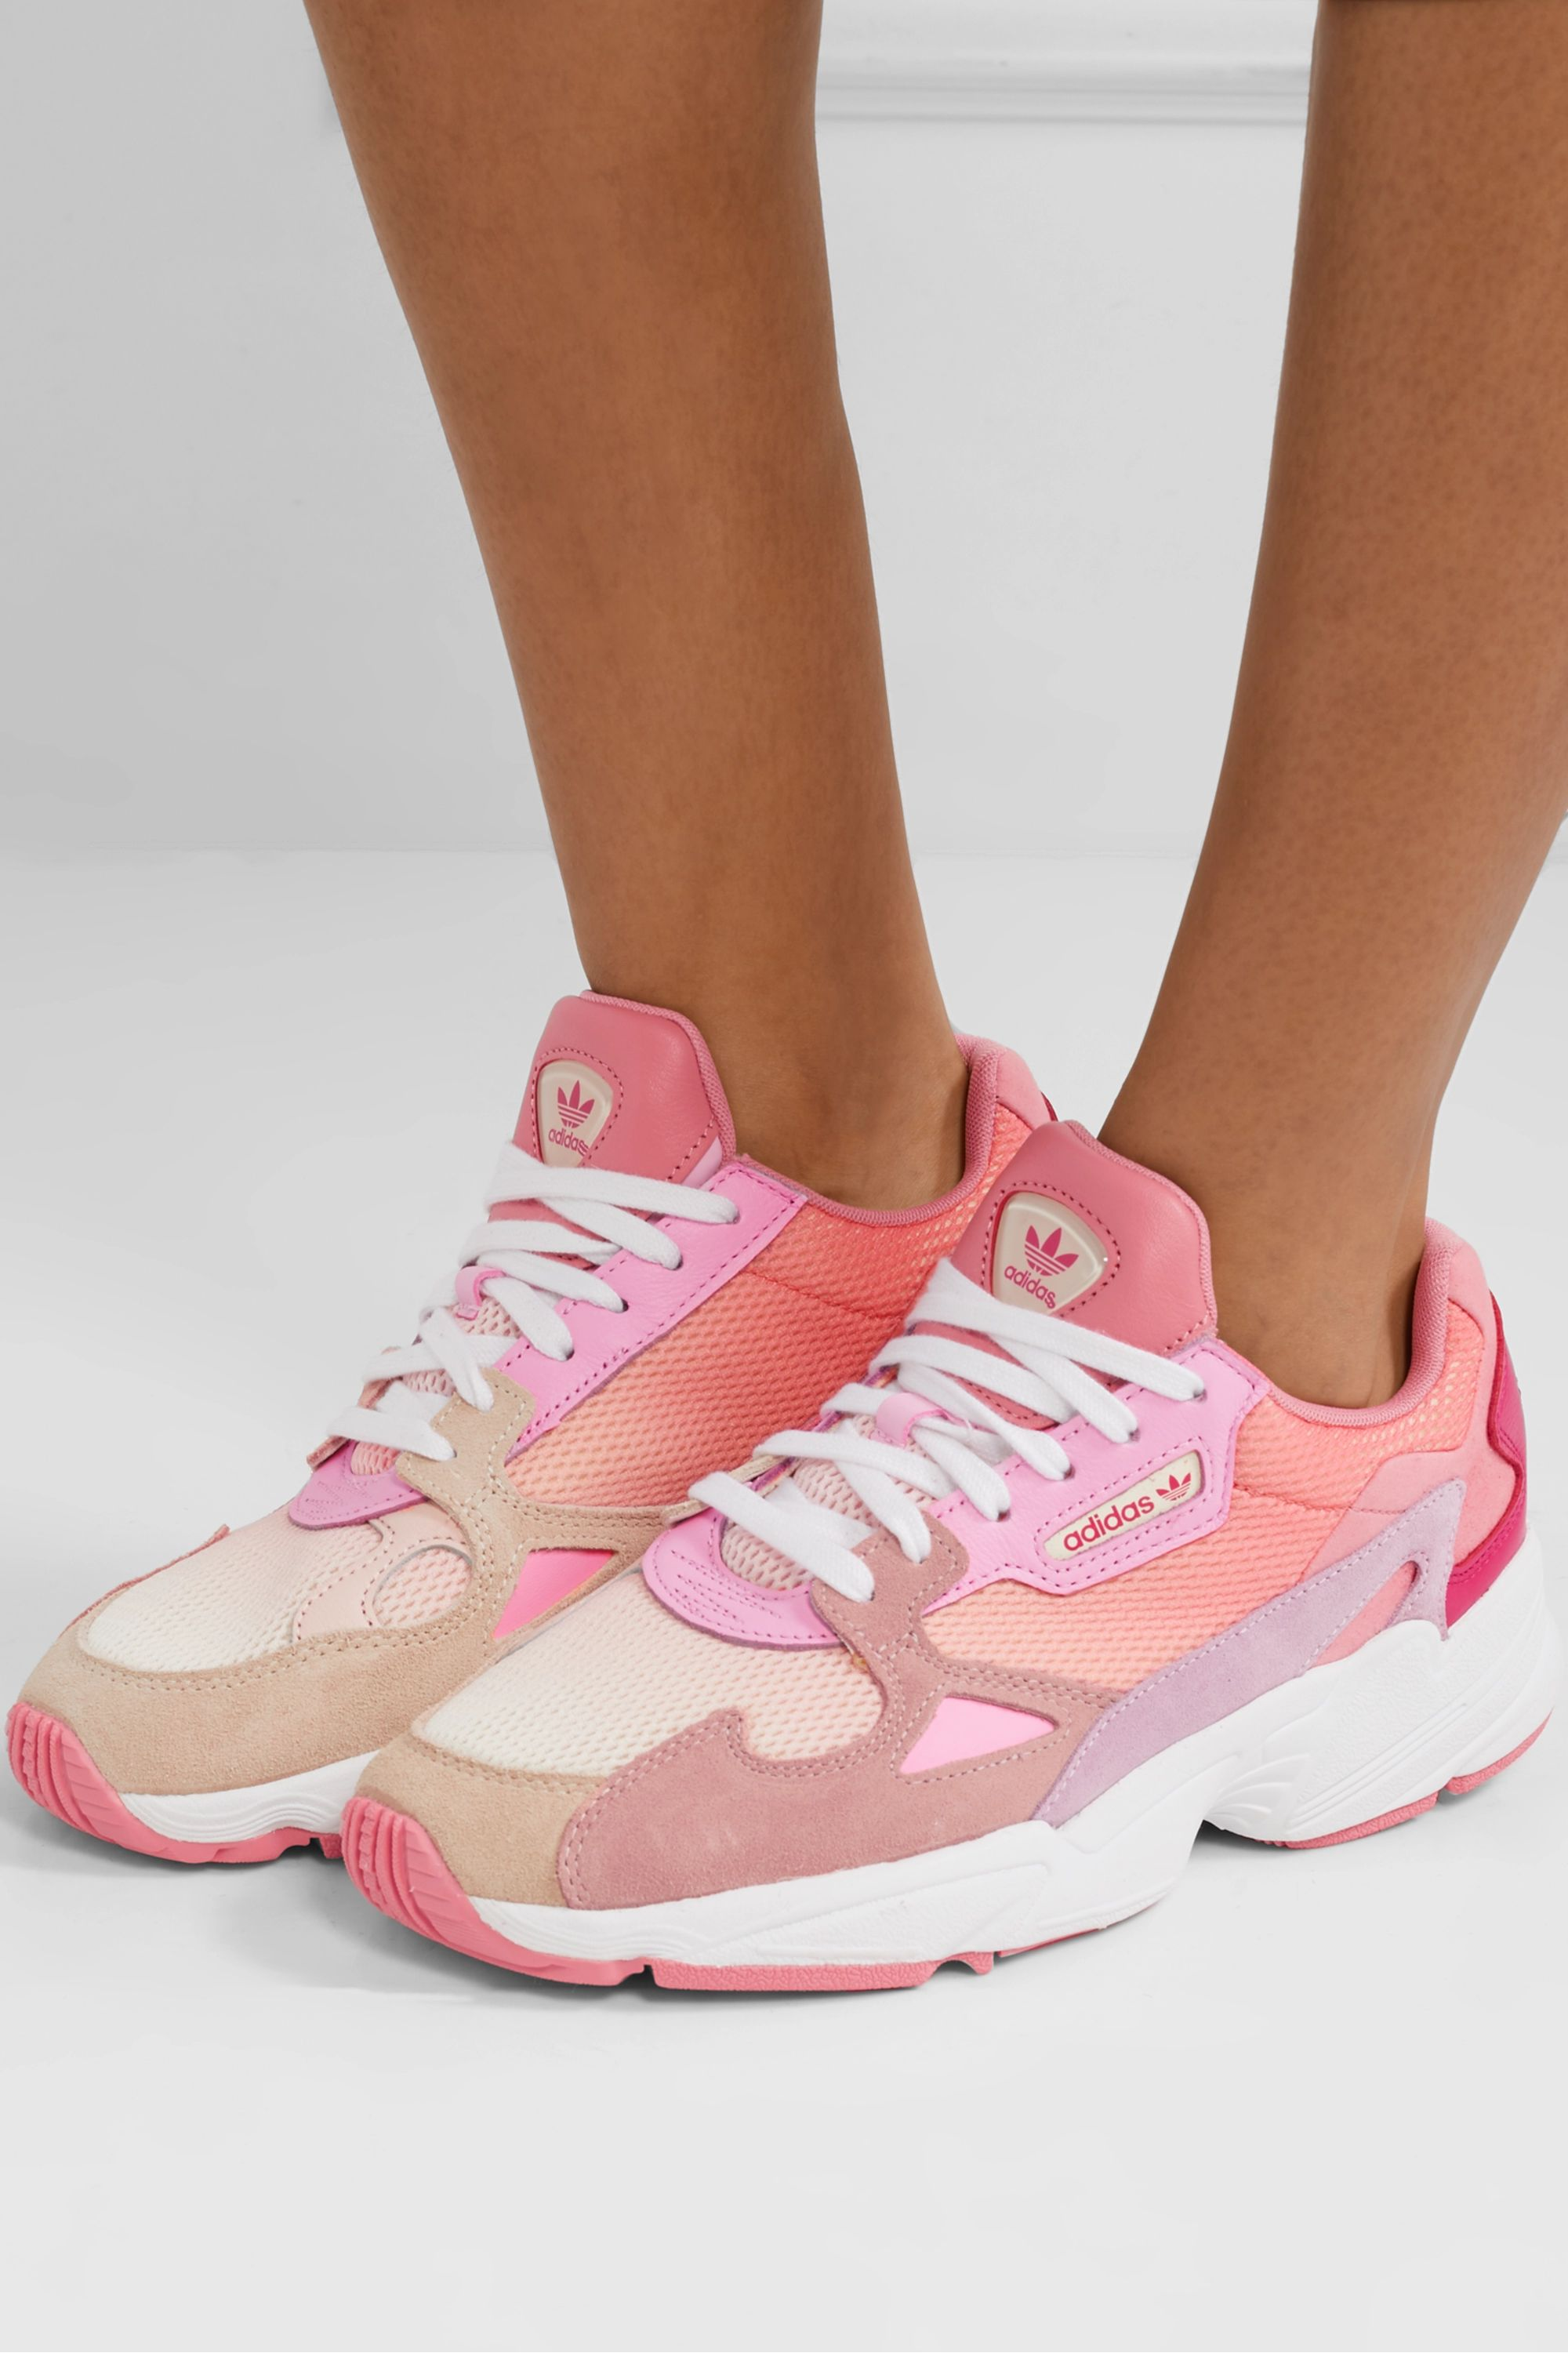 chocar Adviento demanda  Pink Falcon mesh, suede, leather and felt sneakers | adidas Originals |  NET-A-PORTER